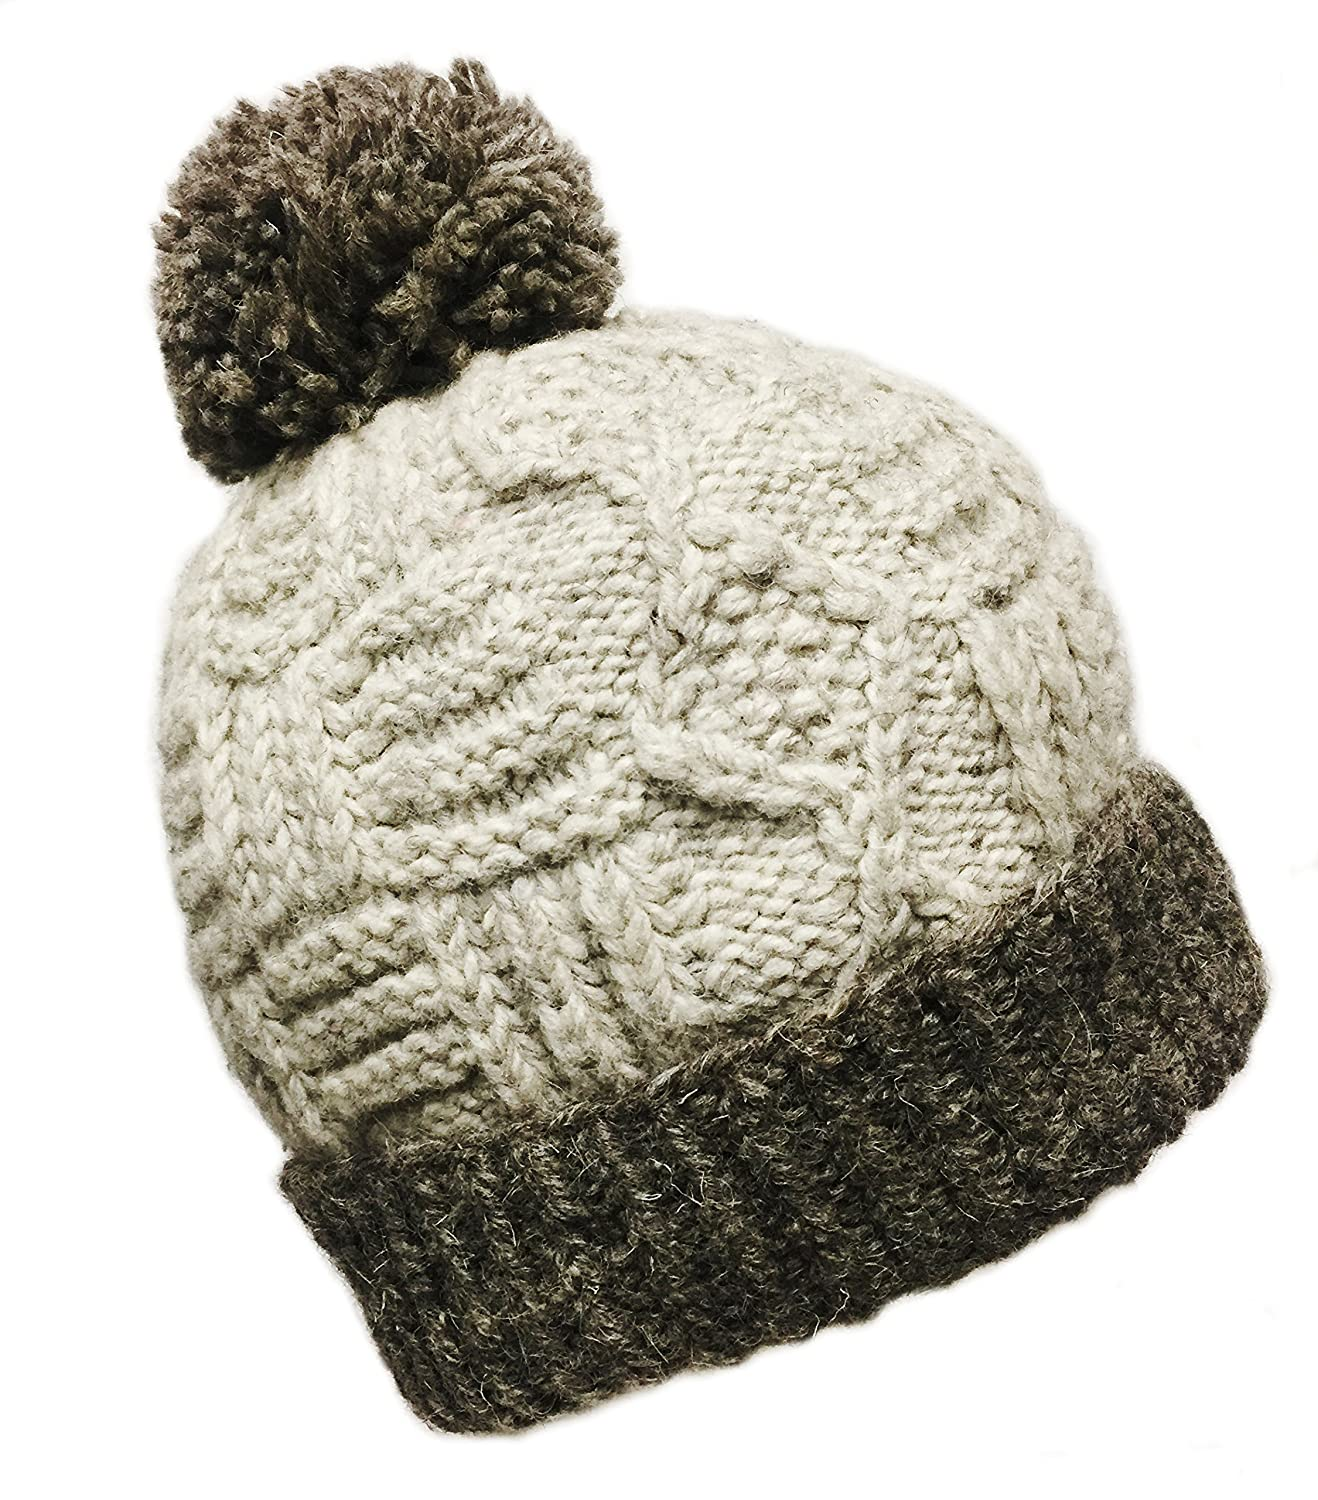 62a847b7305 Amazon.com   Nepal Hand Knit Sherpa Hat with Ear Flaps